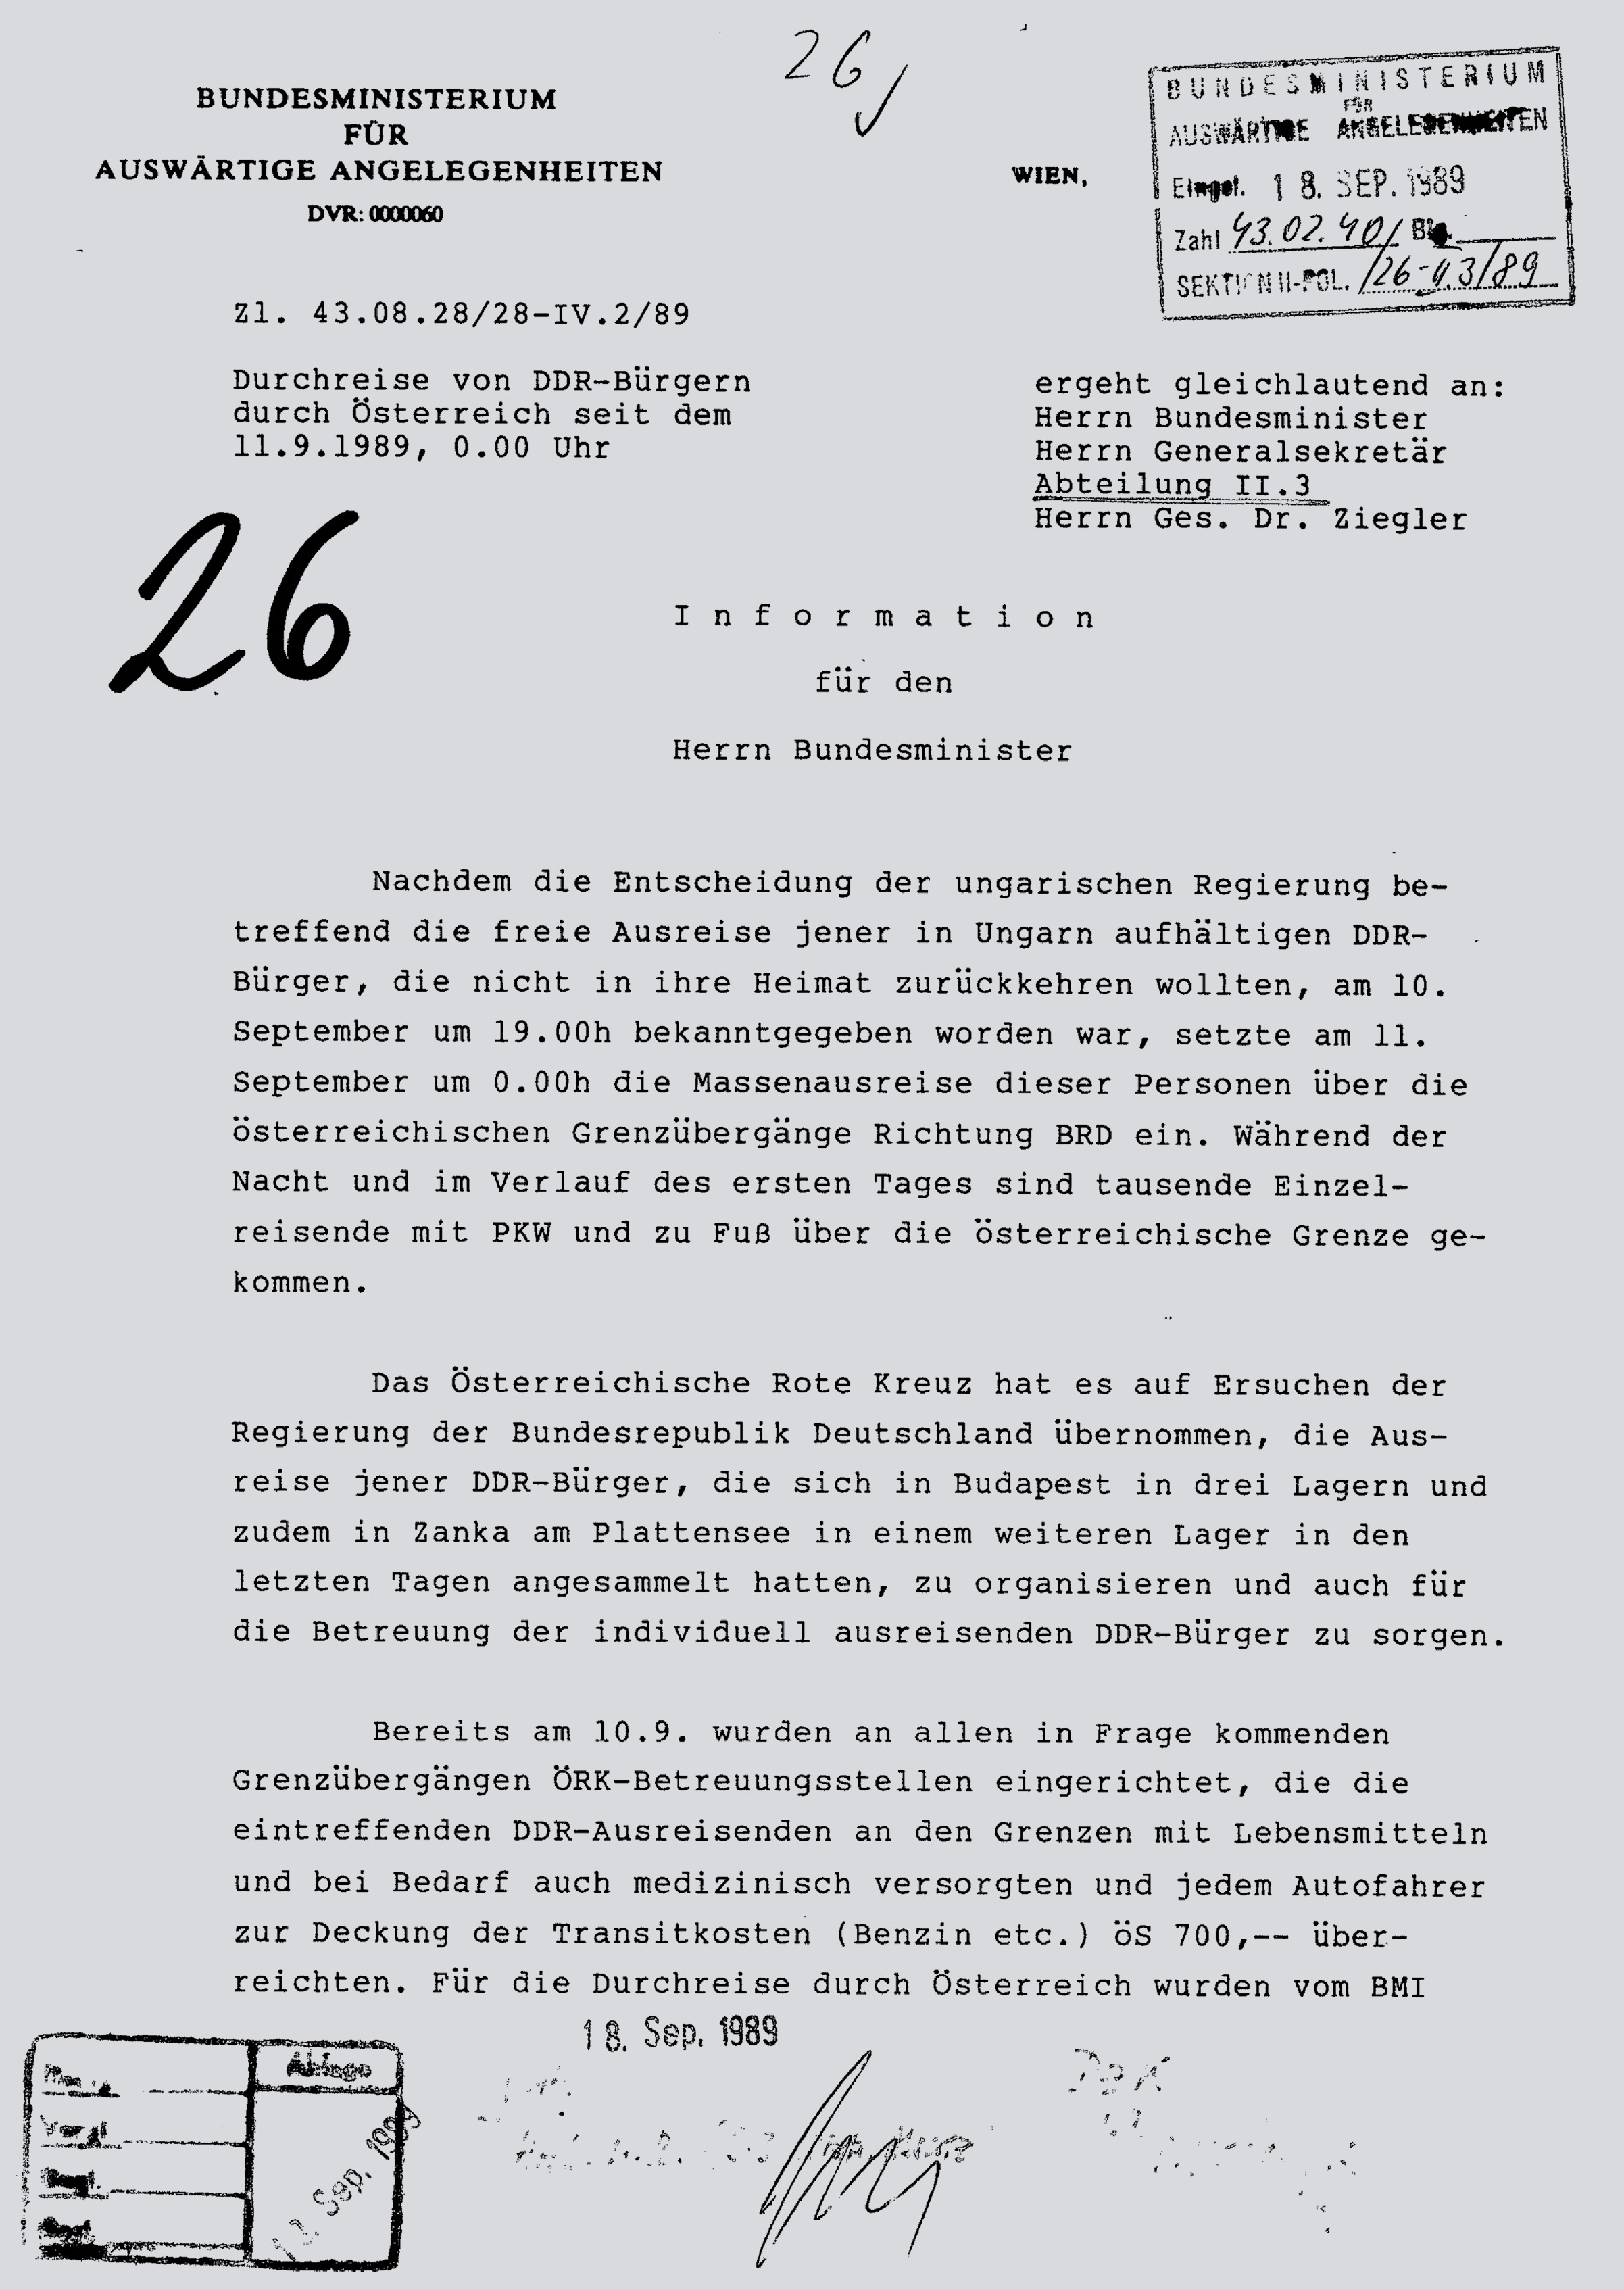 """In this document, an Austrian Foreign Ministry official briefs Foreign Minister Mock about the flood of """"citizens of the German Democratic Republic"""" that started to cross the Austrian border from Hungary beginning at midnight on September 11.  A total of 10,000 crossed the border that day by foot, by car and by busses provided by the Austrian Red Cross. By September 15, 13,674 GDR citizens had crossed. The Austrian Red Cross is commended for its role of providing food, maps and 700 Austrian Schillings for transit costs for every GDR-émigré."""